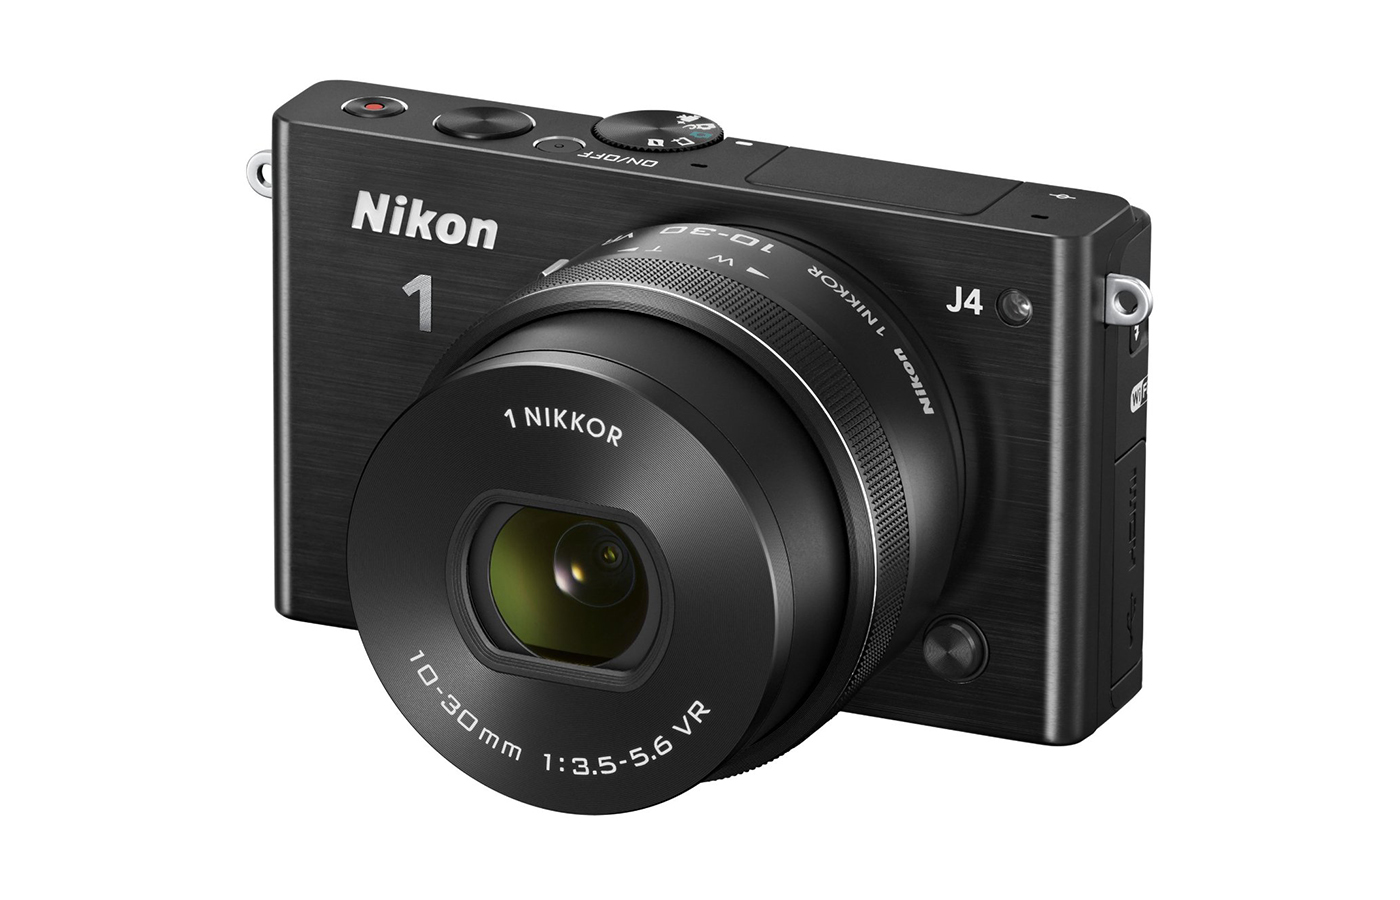 Getting Started with CSC: 6 Mirrorless Cameras Under $600 Nikon j4 1 Cameraplex